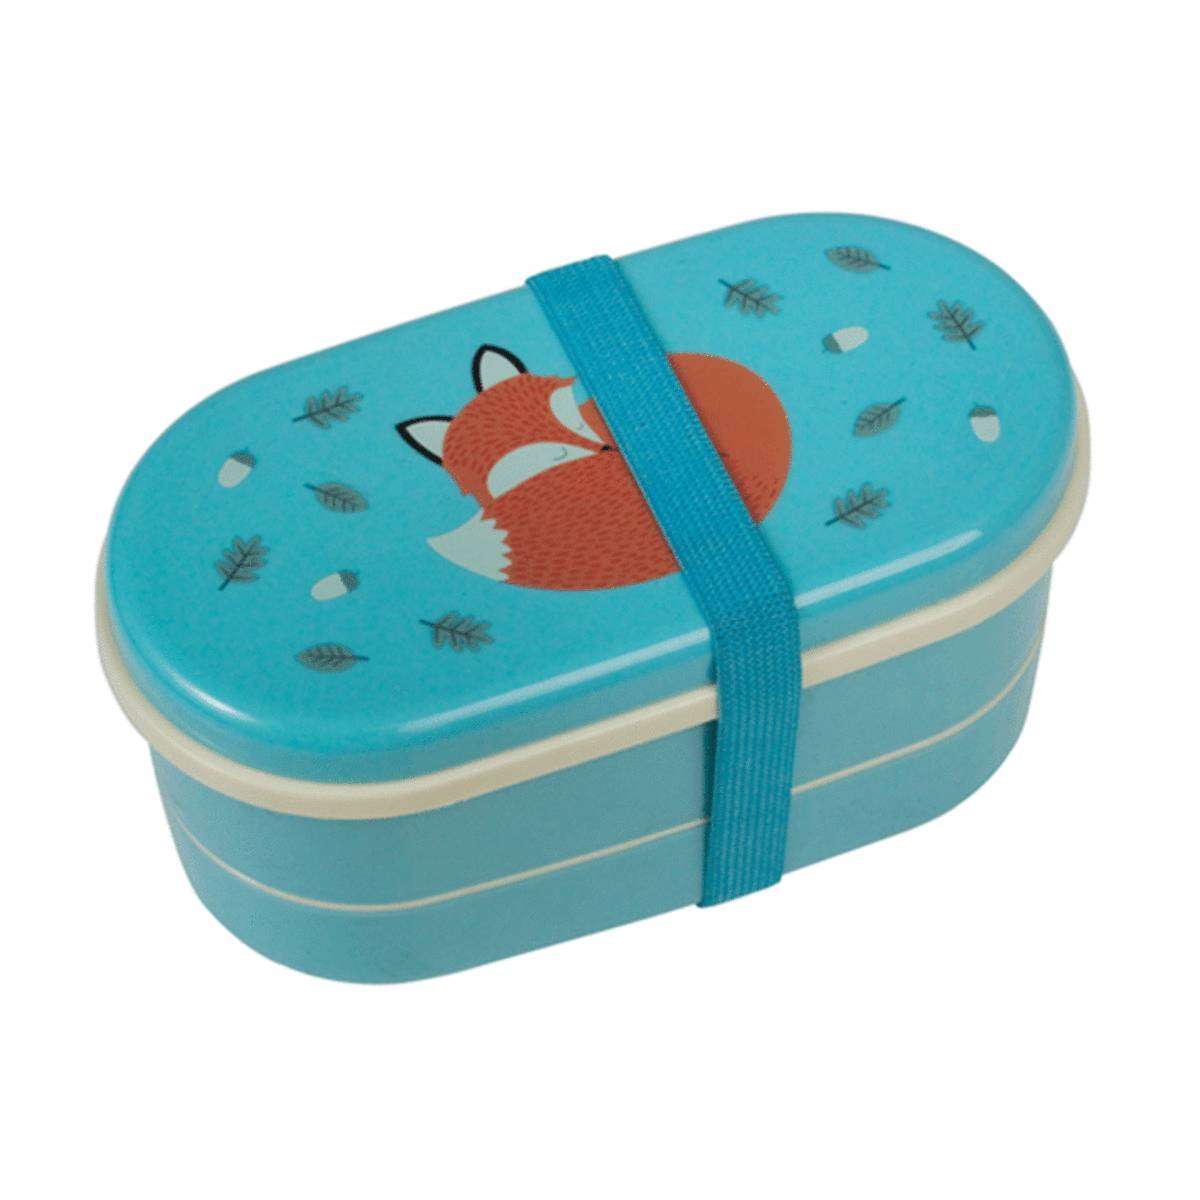 Rex Bento Box Rusty the Fox